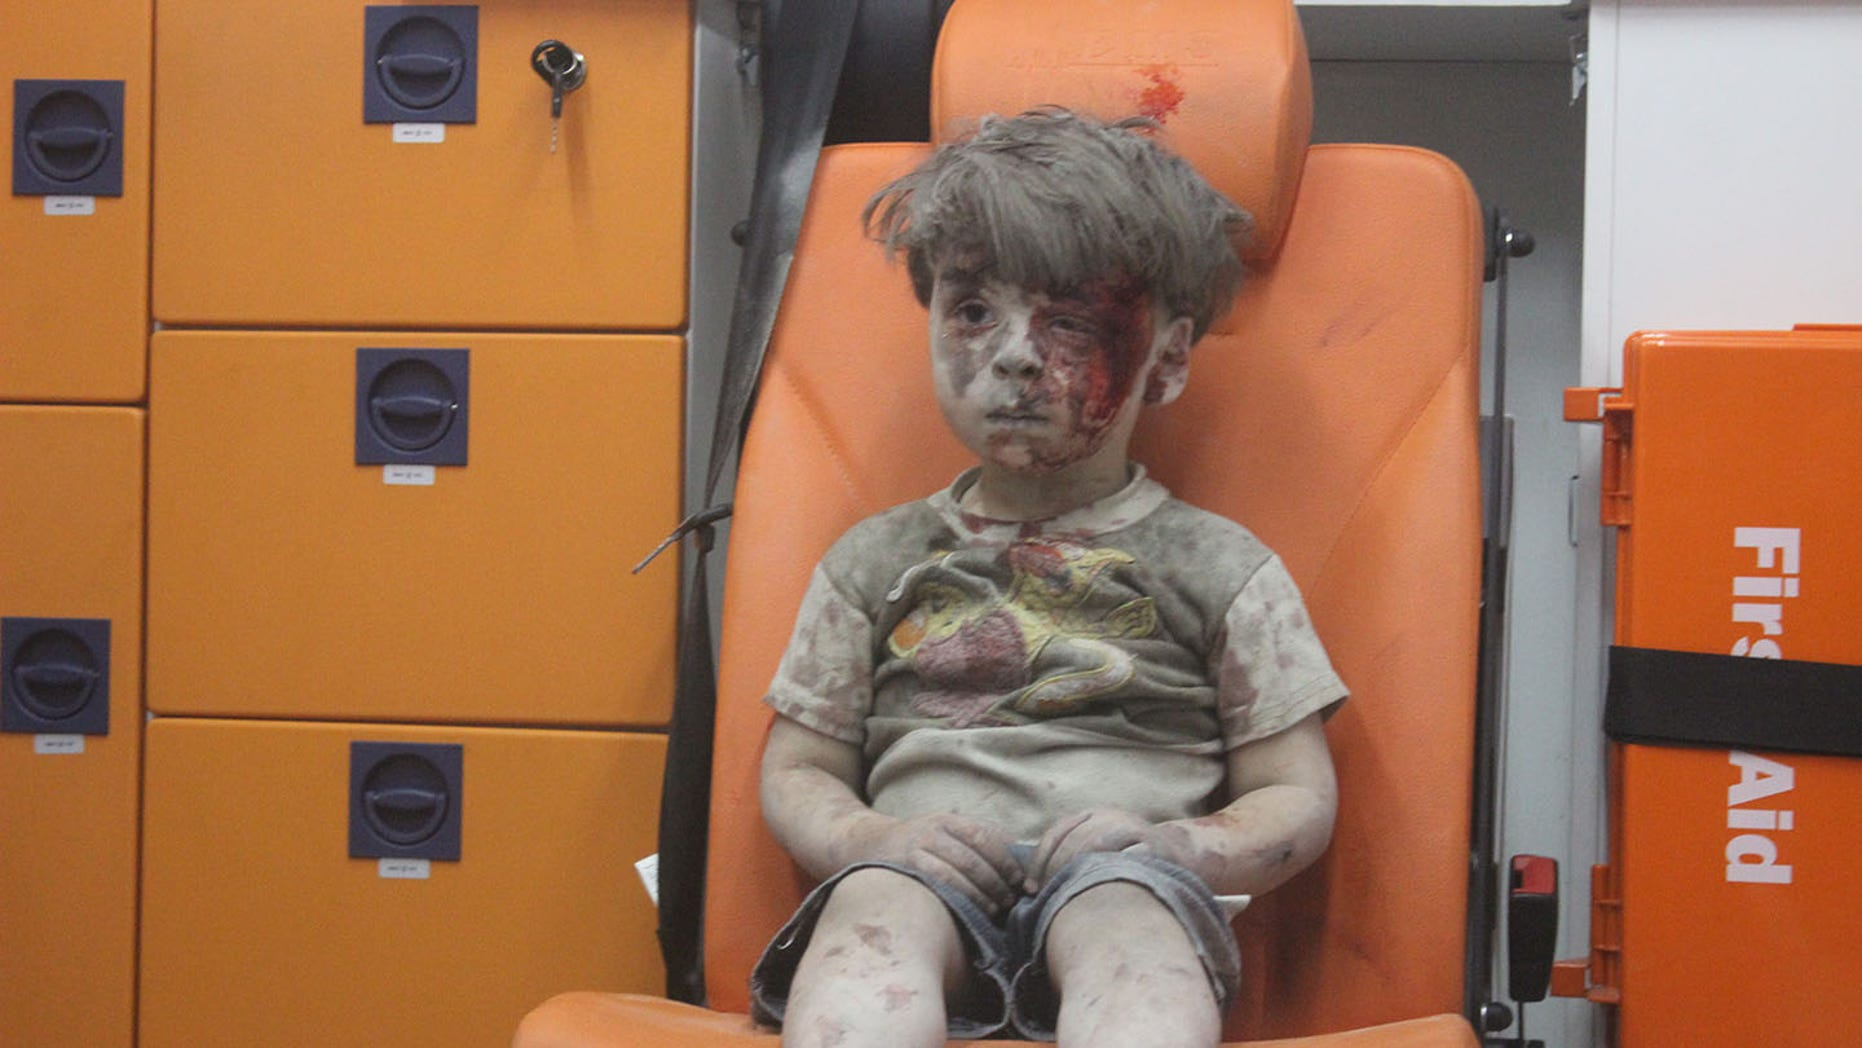 Omran Daqneesh sits in an ambulance after being pulled out of a building hit by an airstrike in Aleppo, Syria on Aug. 17, 2016.